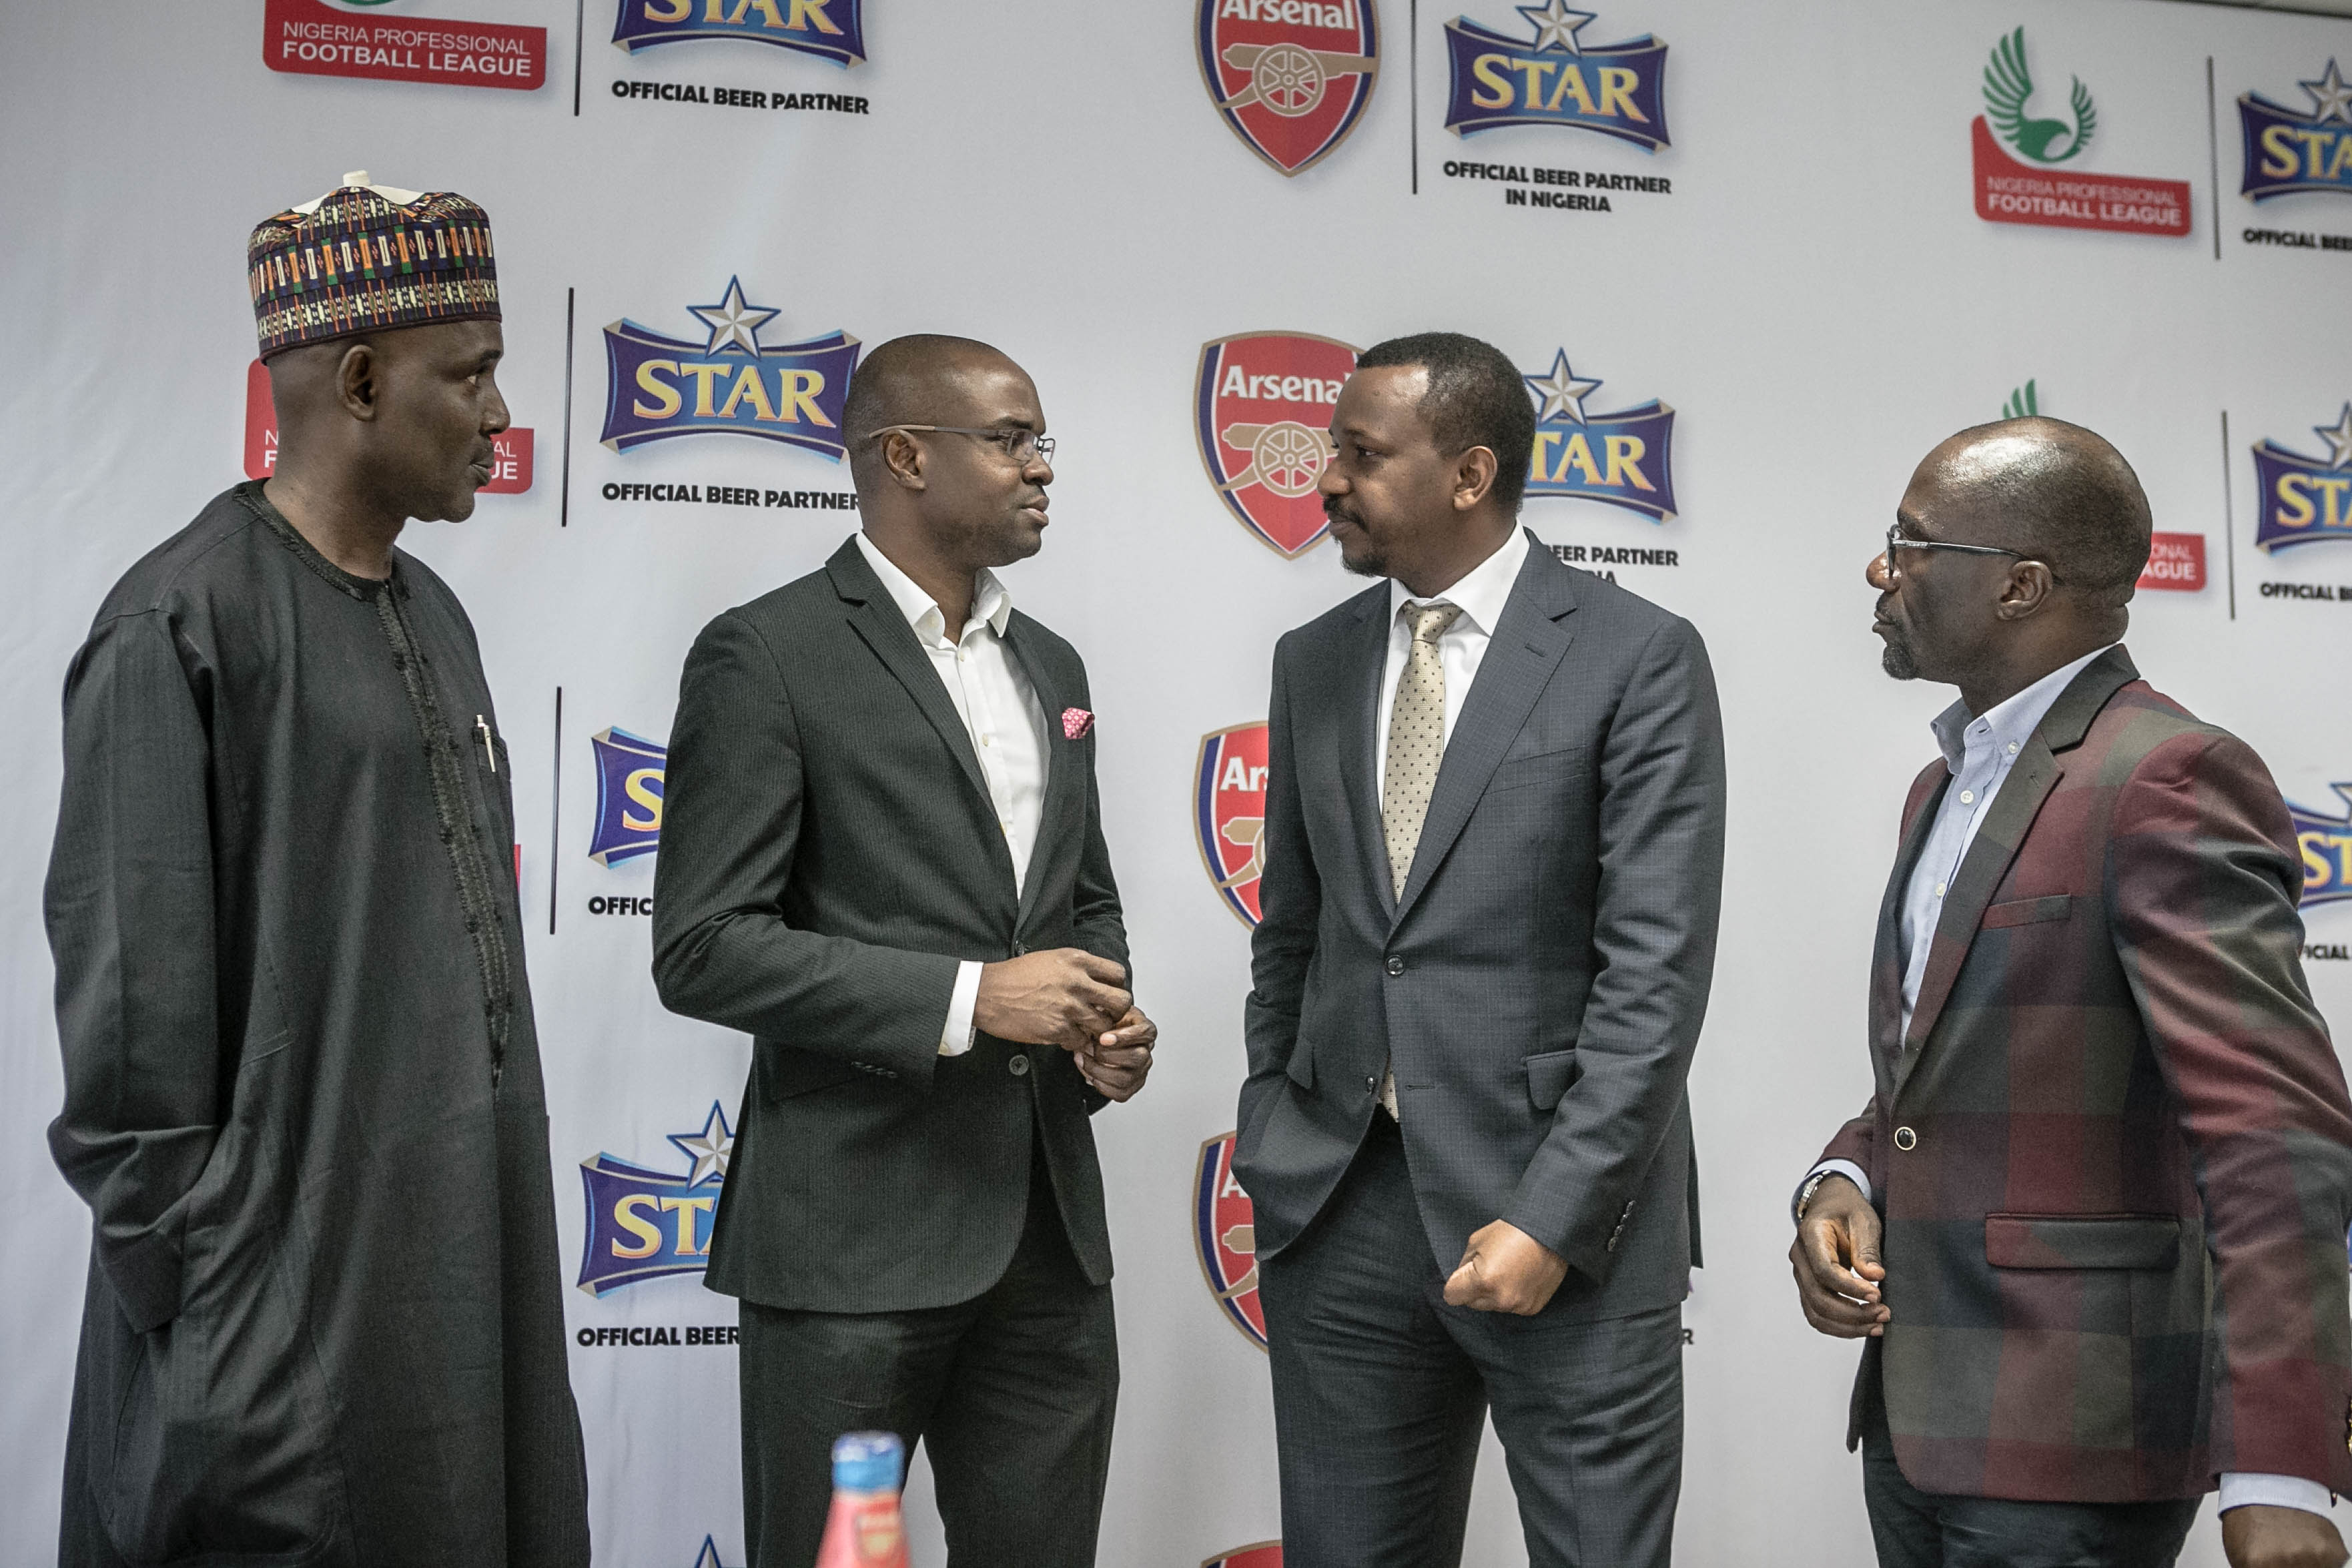 Salihu ababukar, COO of the LMC, Tokunbo Adodo, Portfolio Manager National Premium Lager Brands,Mallam Shehu Dikko, Chairman LMC, Vivian Ikem, Head, Government Relations, Nigerian Breweries